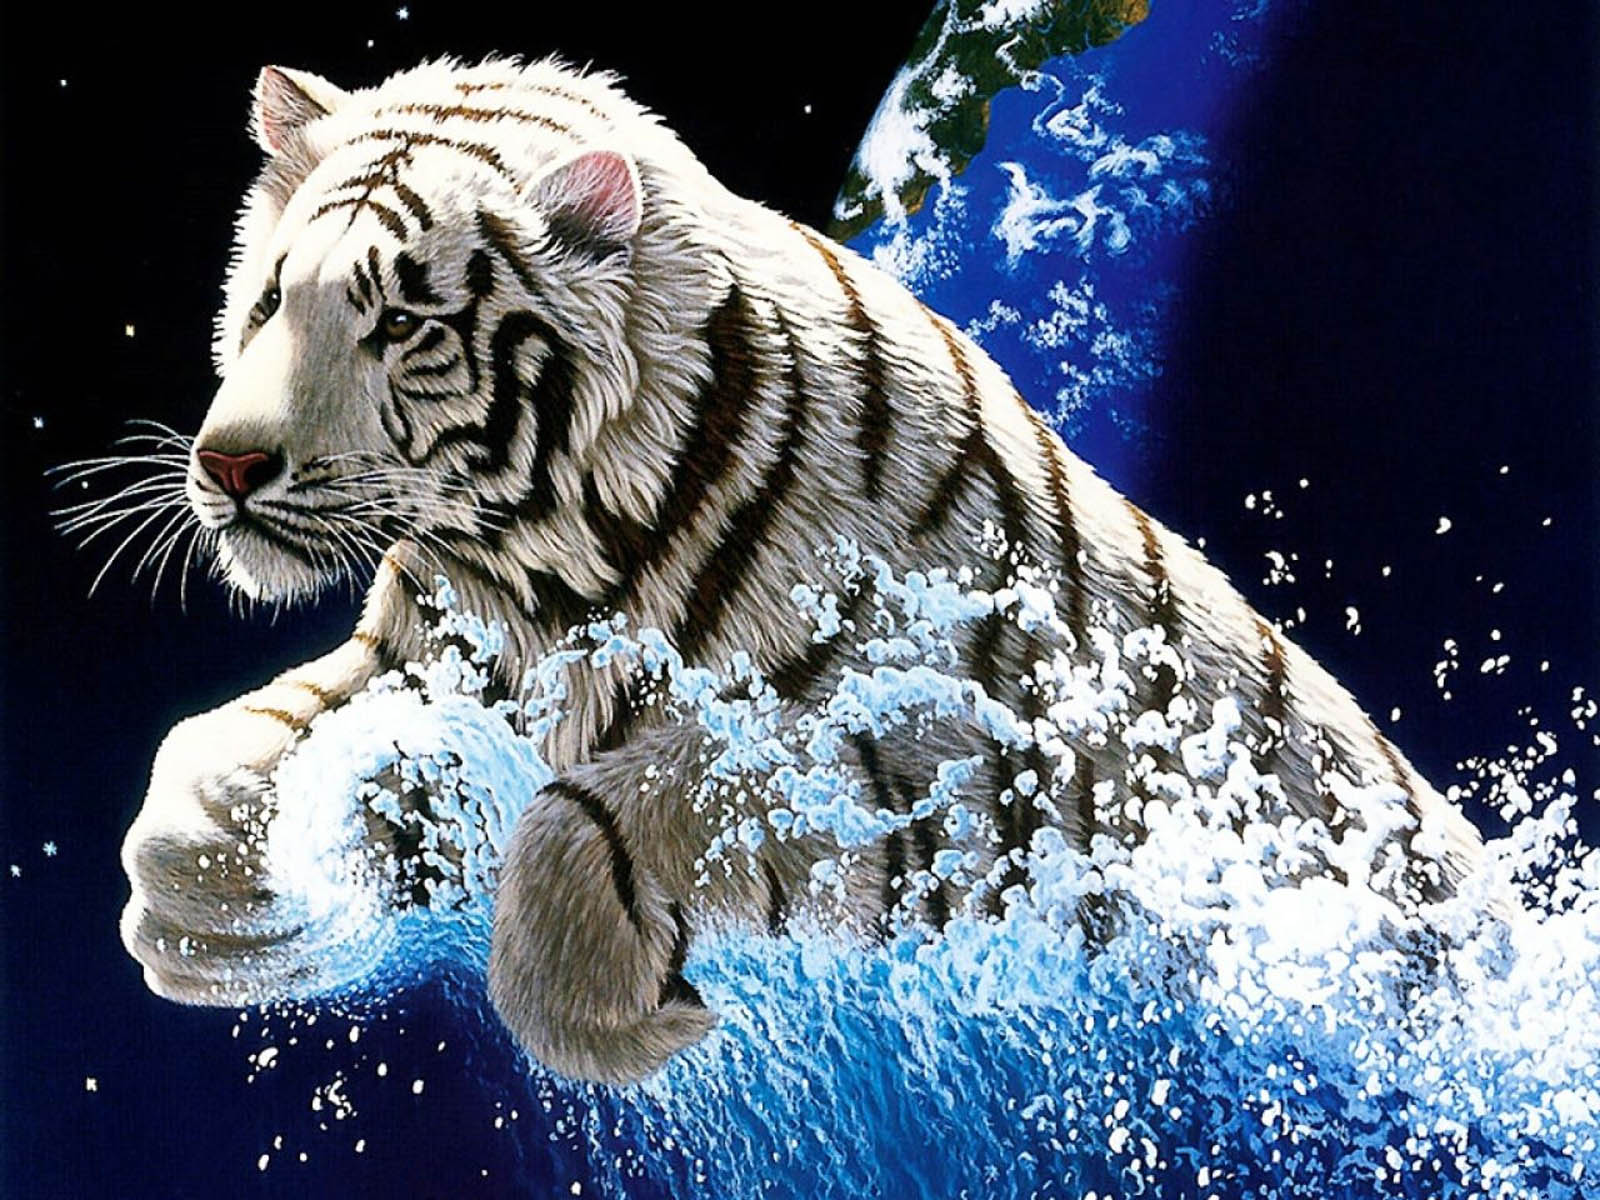 wallpaper hd white tiger - photo #41